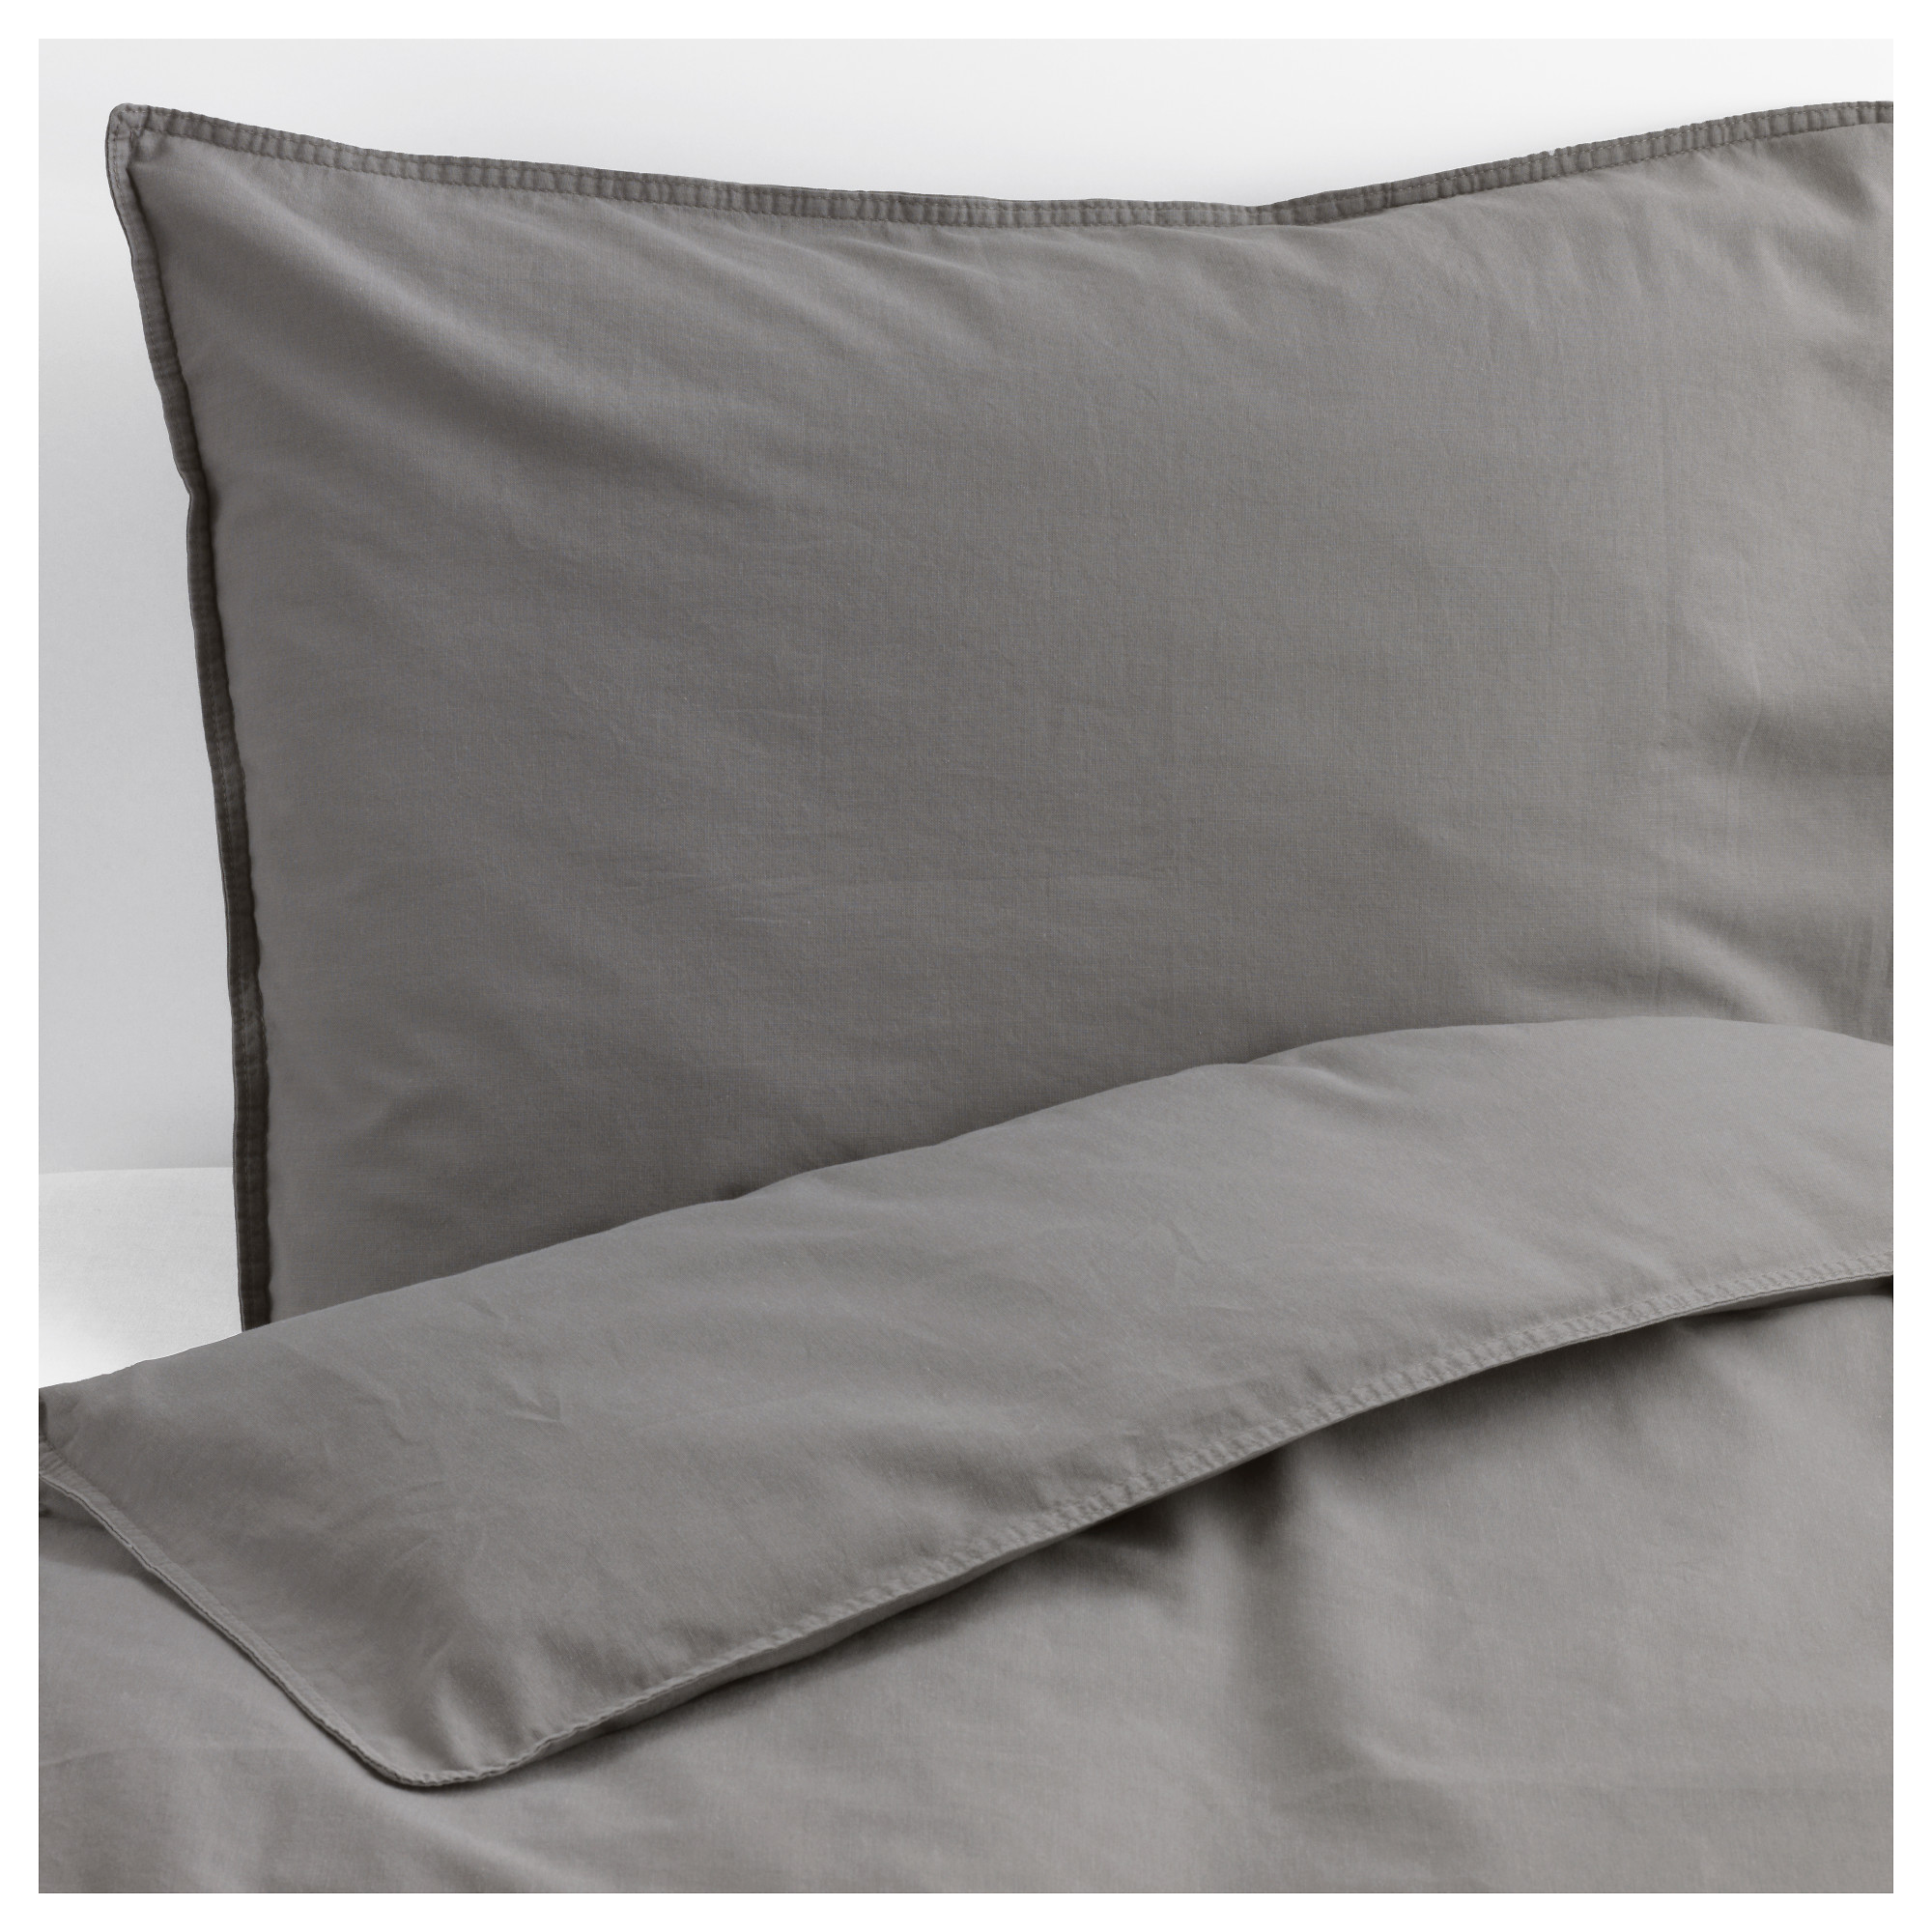 ngslilja duvet cover and pillowcases gray thread count 125 inch